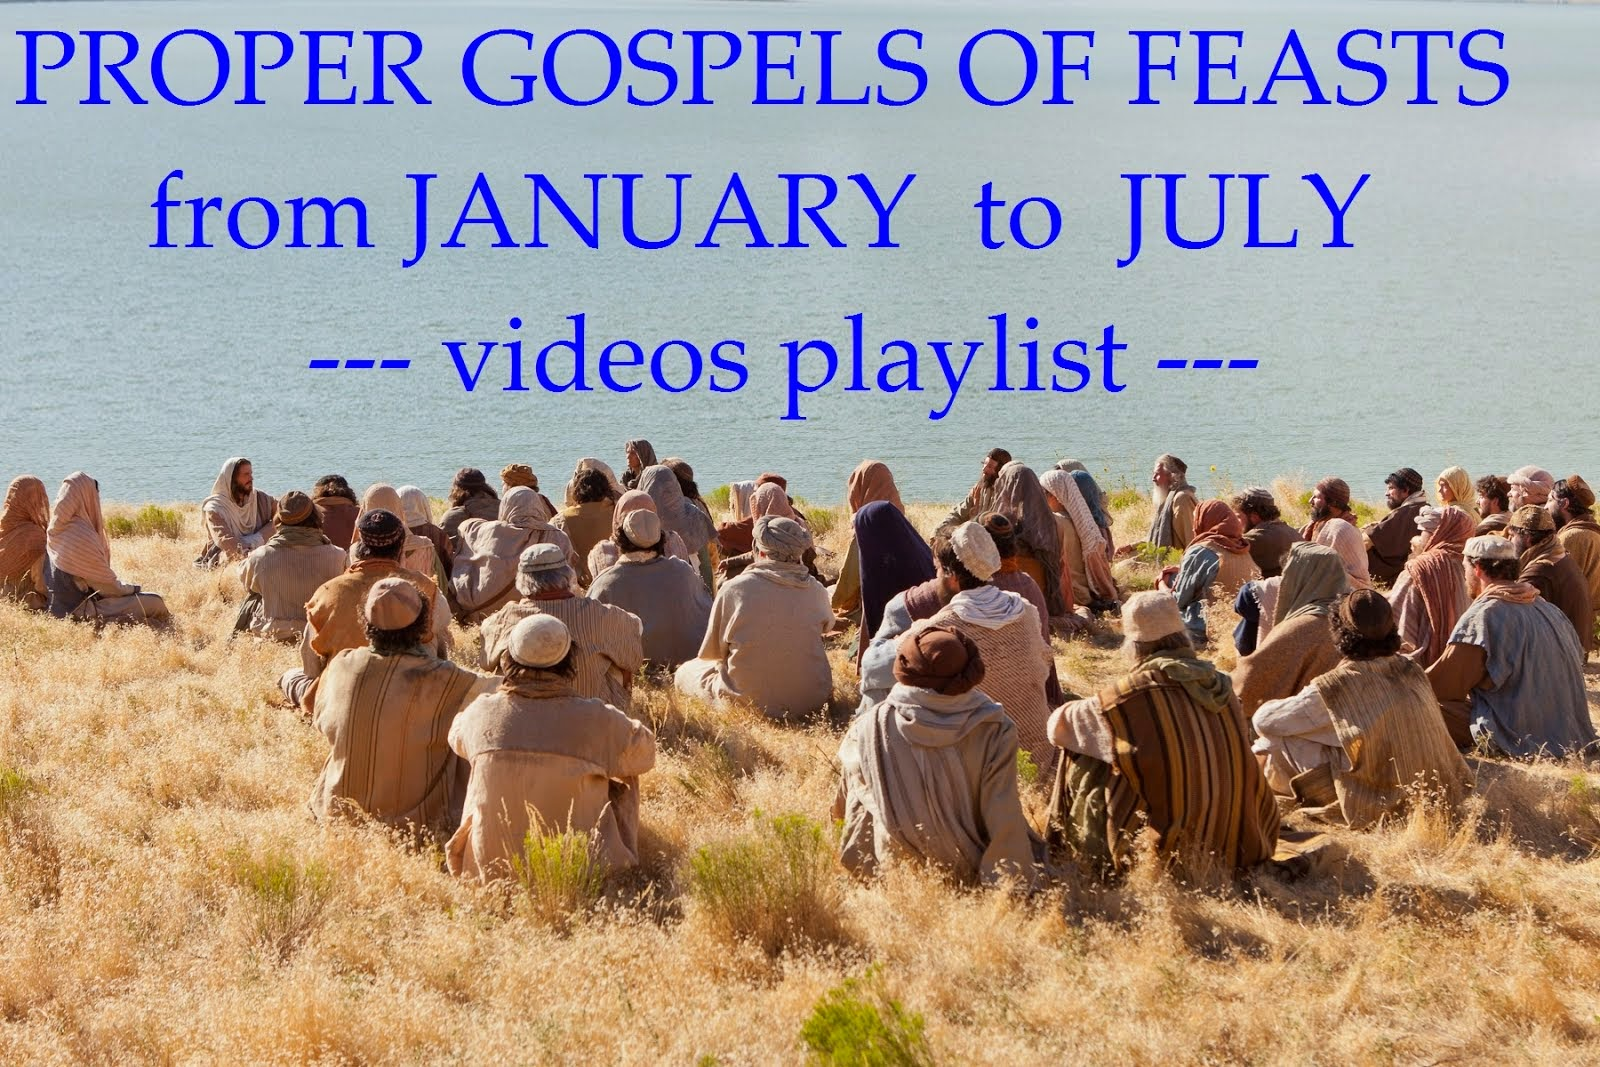 PROPER GOSPELS OF FEASTS - from JANUARY to JULY